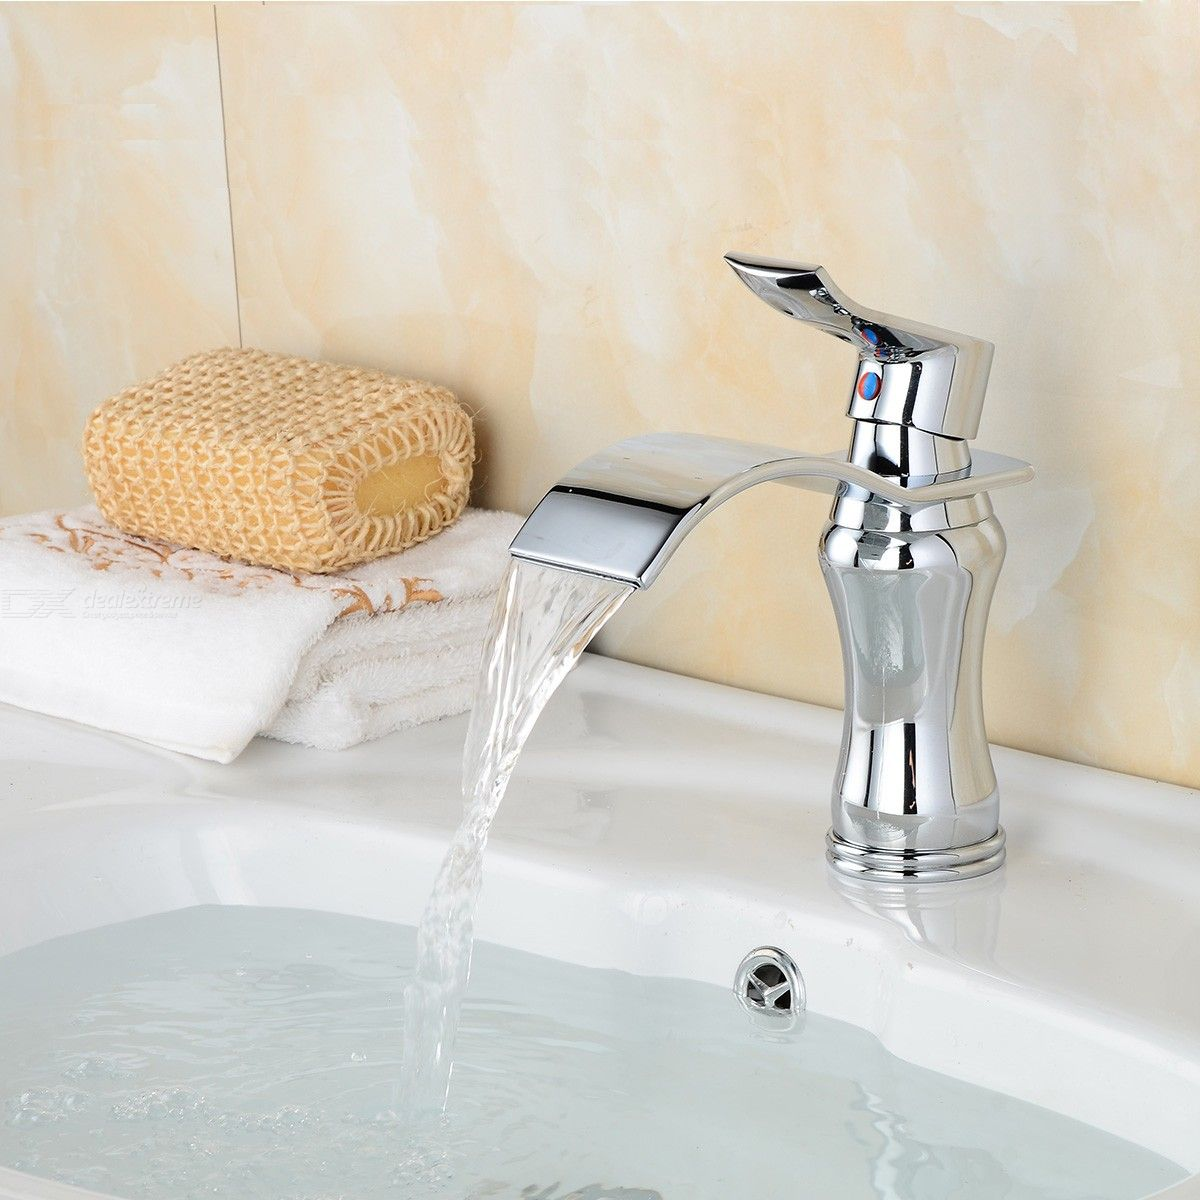 Contemporary Brass Chrome Waterfall Ceramic Valve One-Hole Bathroom Sink Faucet w/ Single Handle